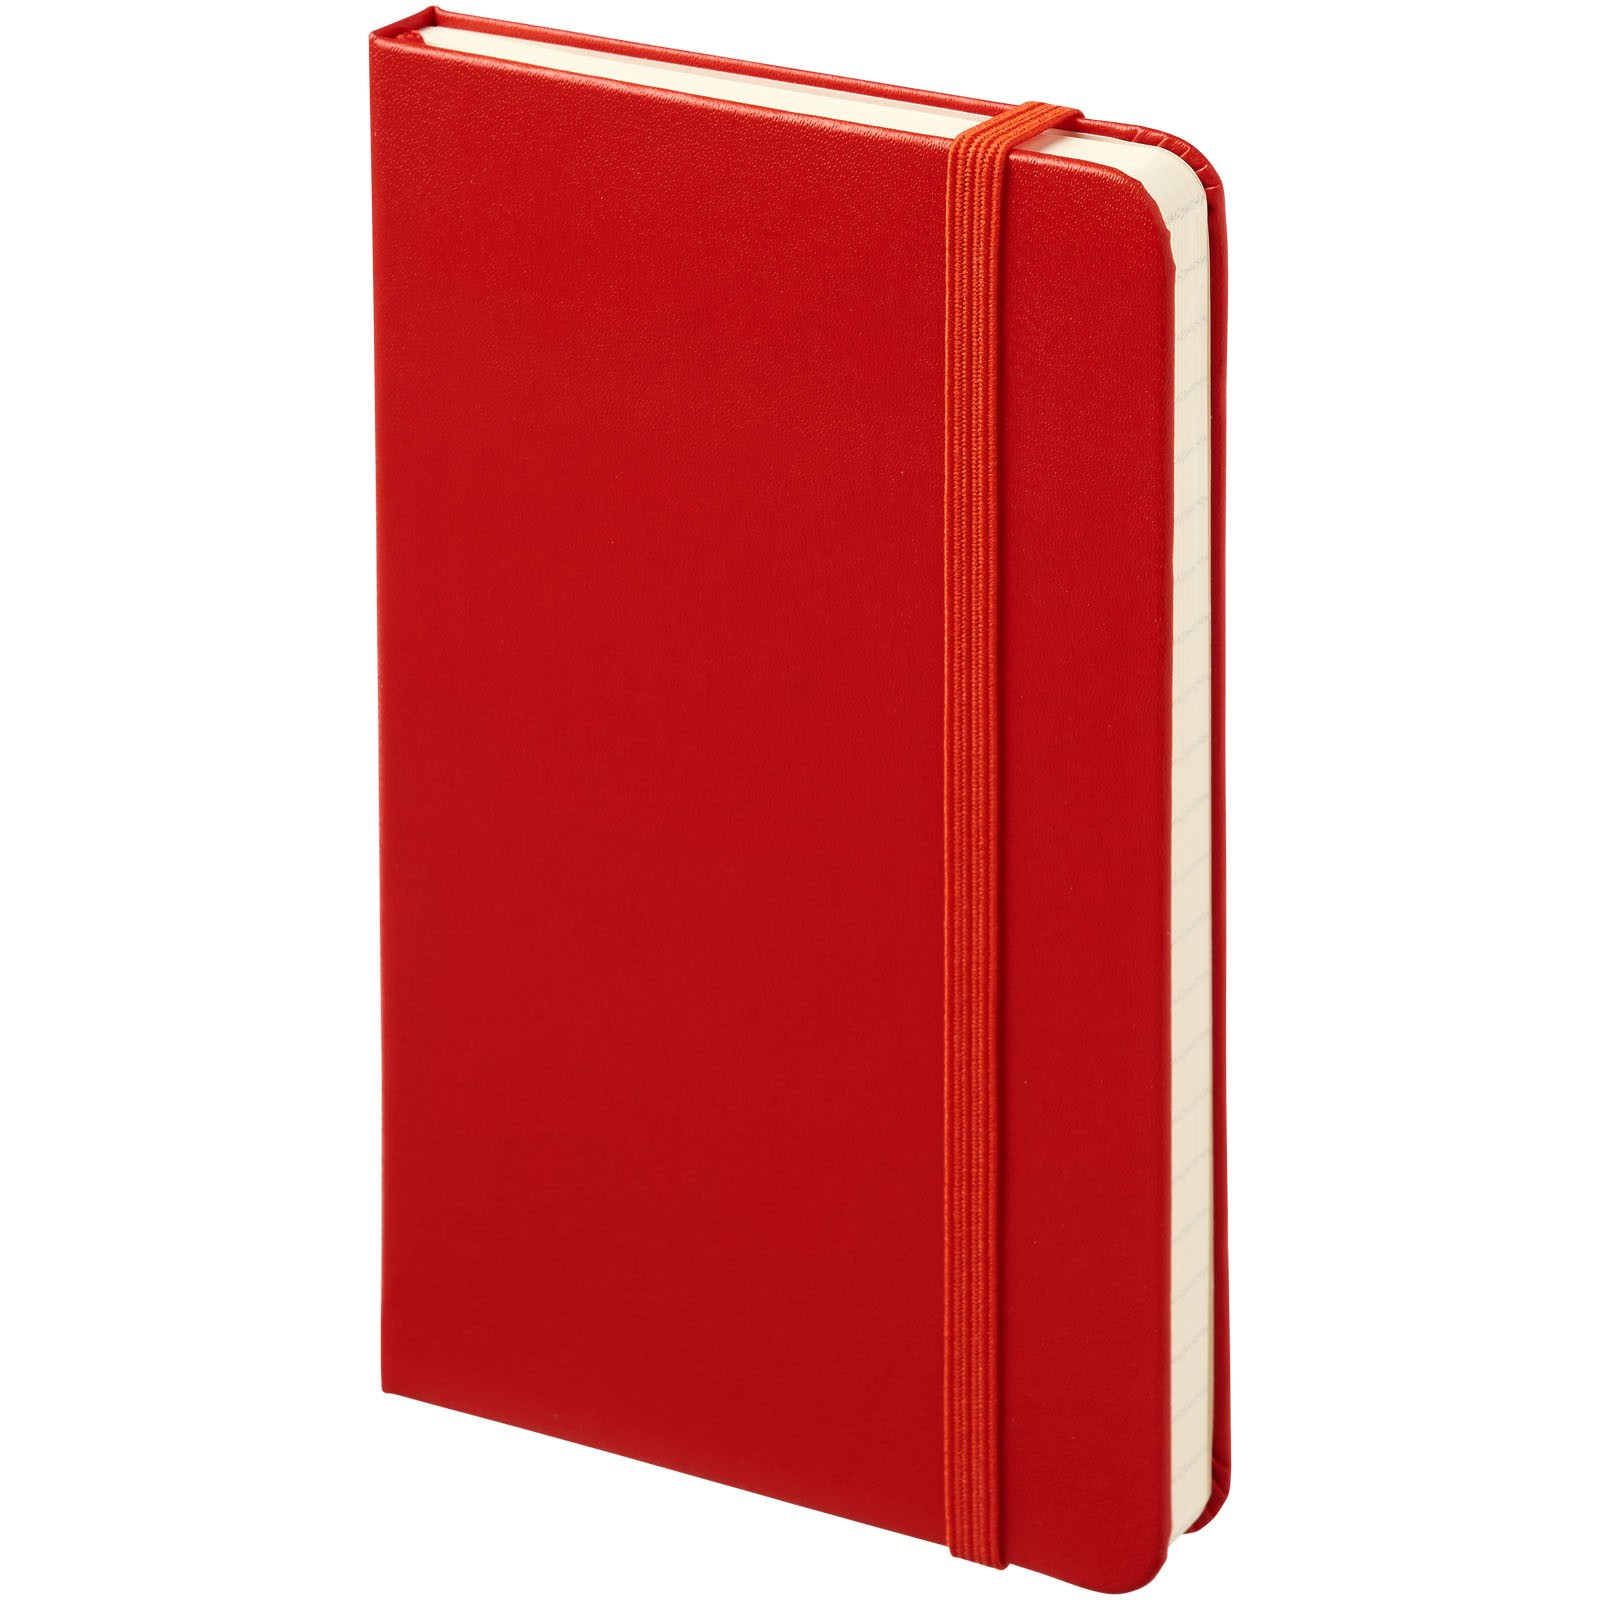 Classic PK hard cover notebook - ruled - Scarlet red